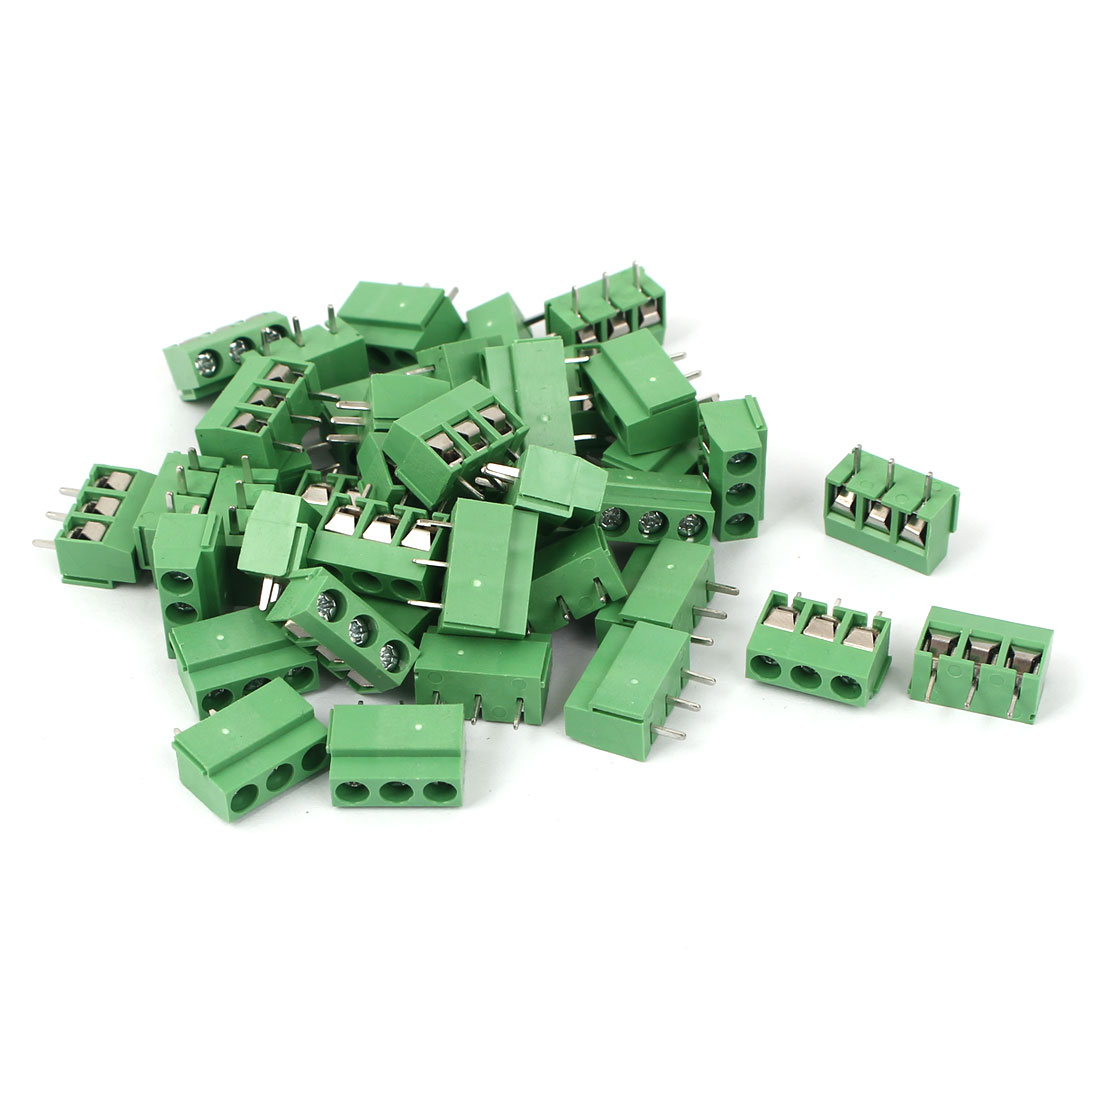 40Pcs 5.08mm Pitch 3 way Straight Terminal PCB Screw Terminal Block Connector